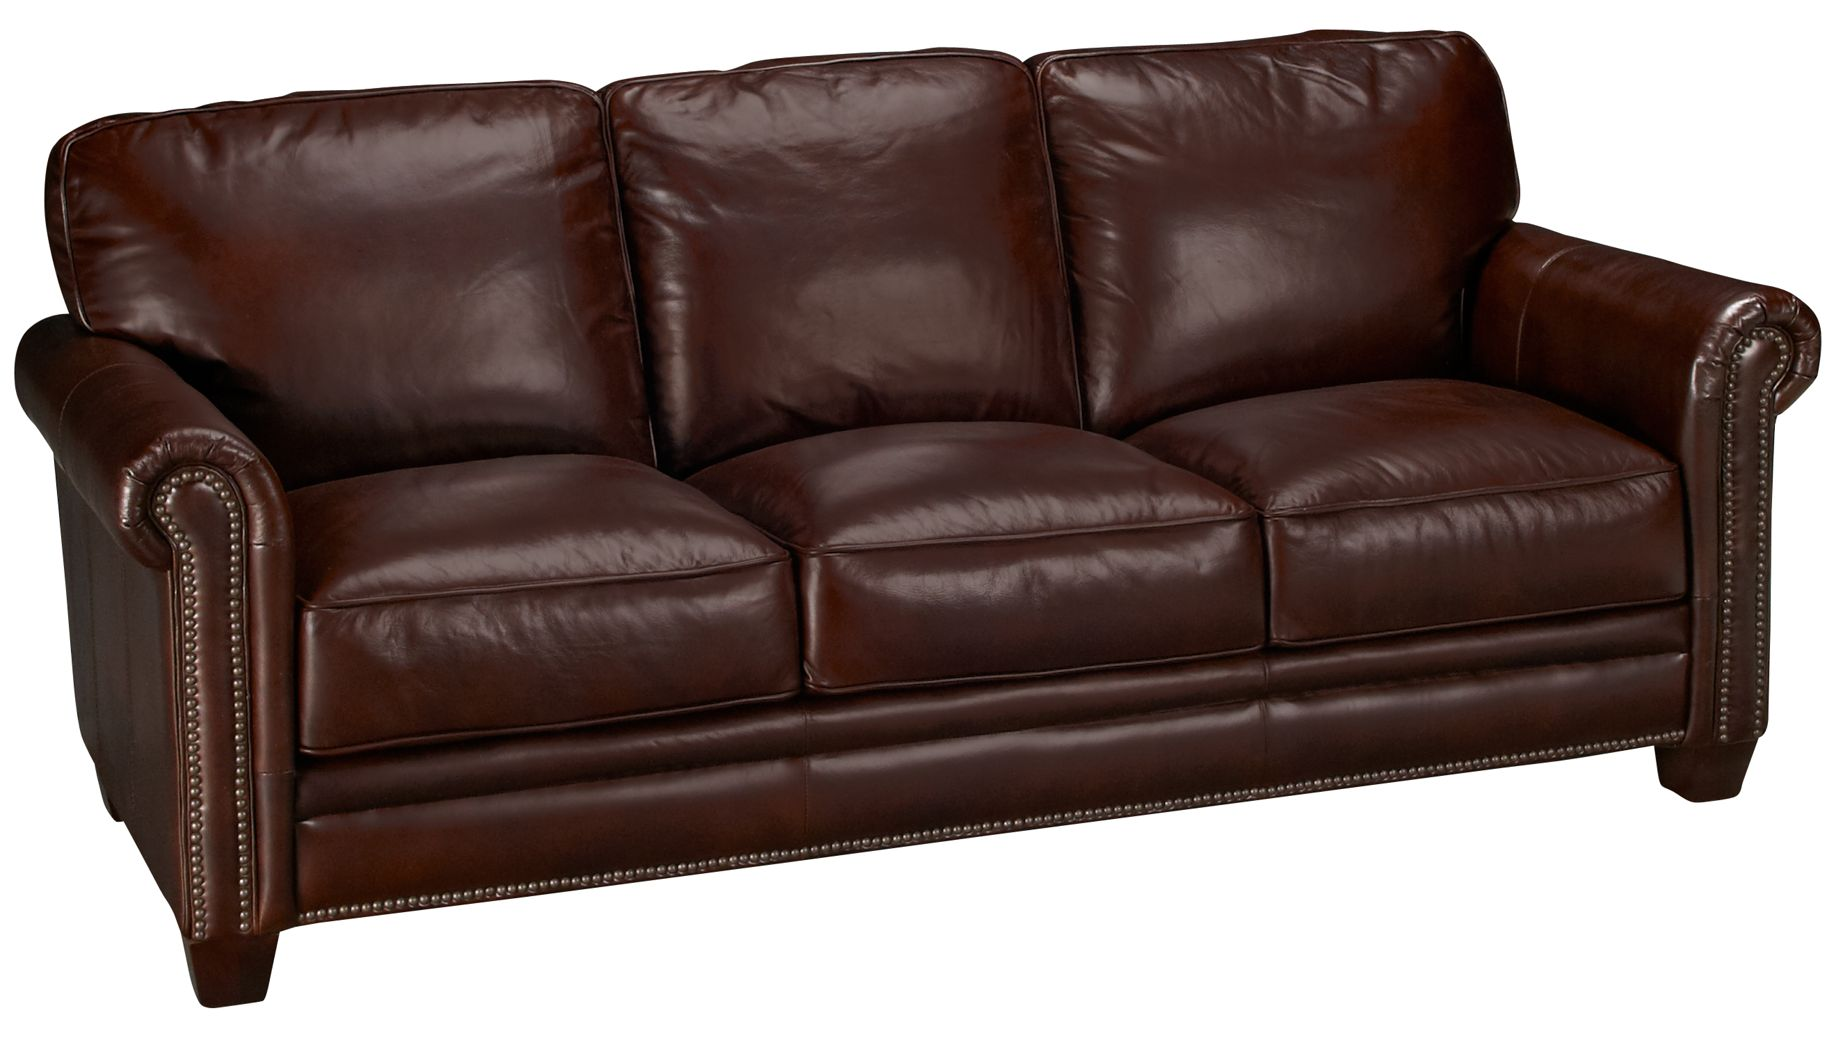 Futura Leather Sofas Sofa Review